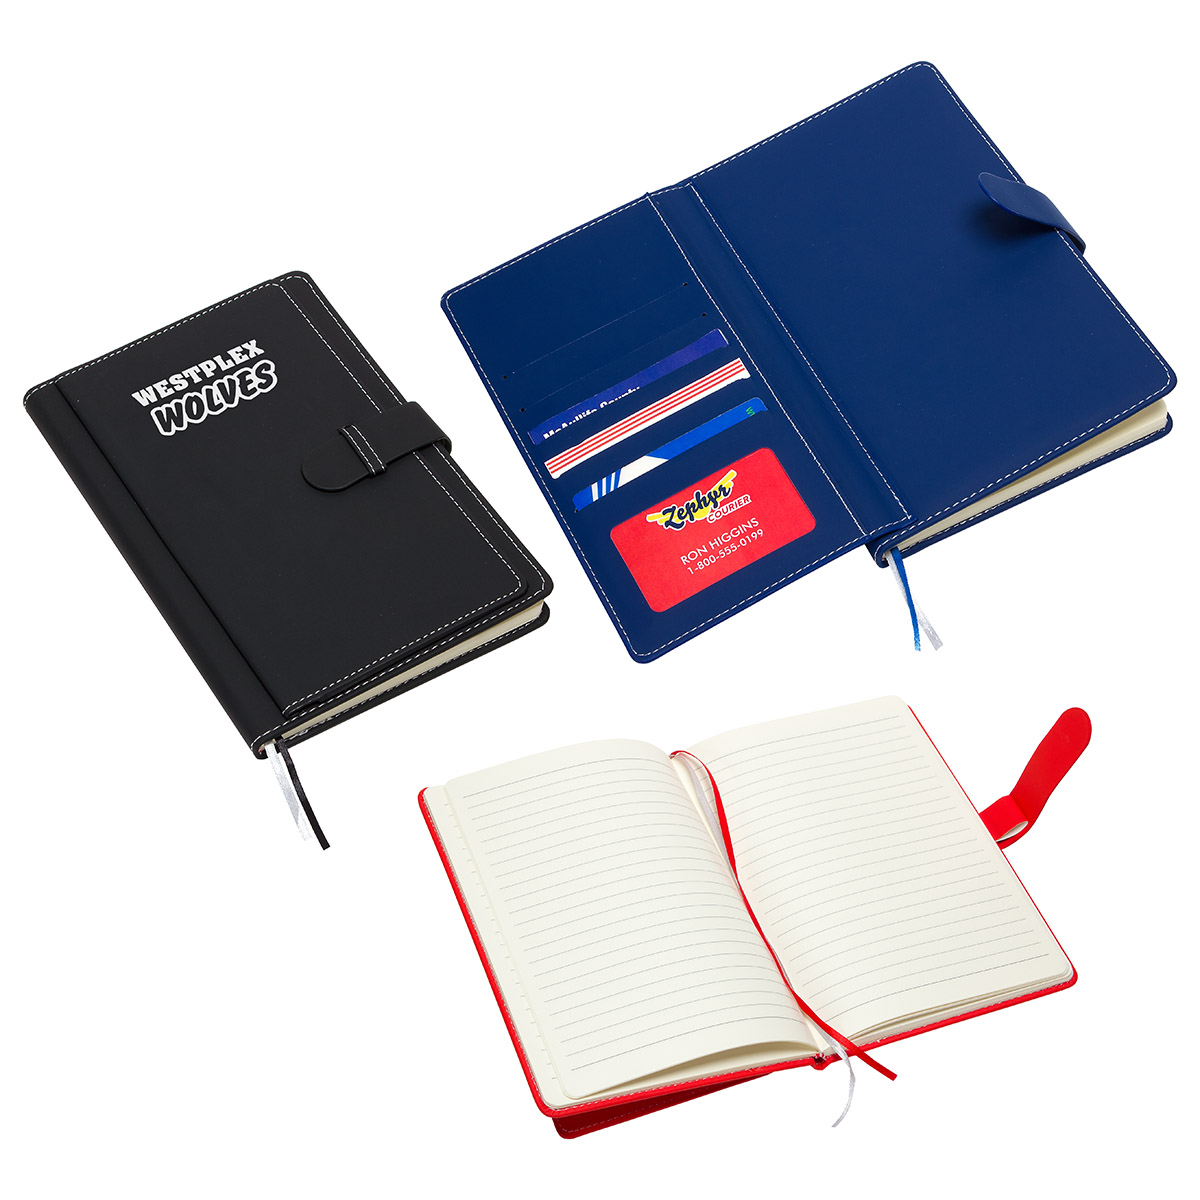 Travel Journal with Card Pockets, WOF-TJ17 - 1 Colour Imprint